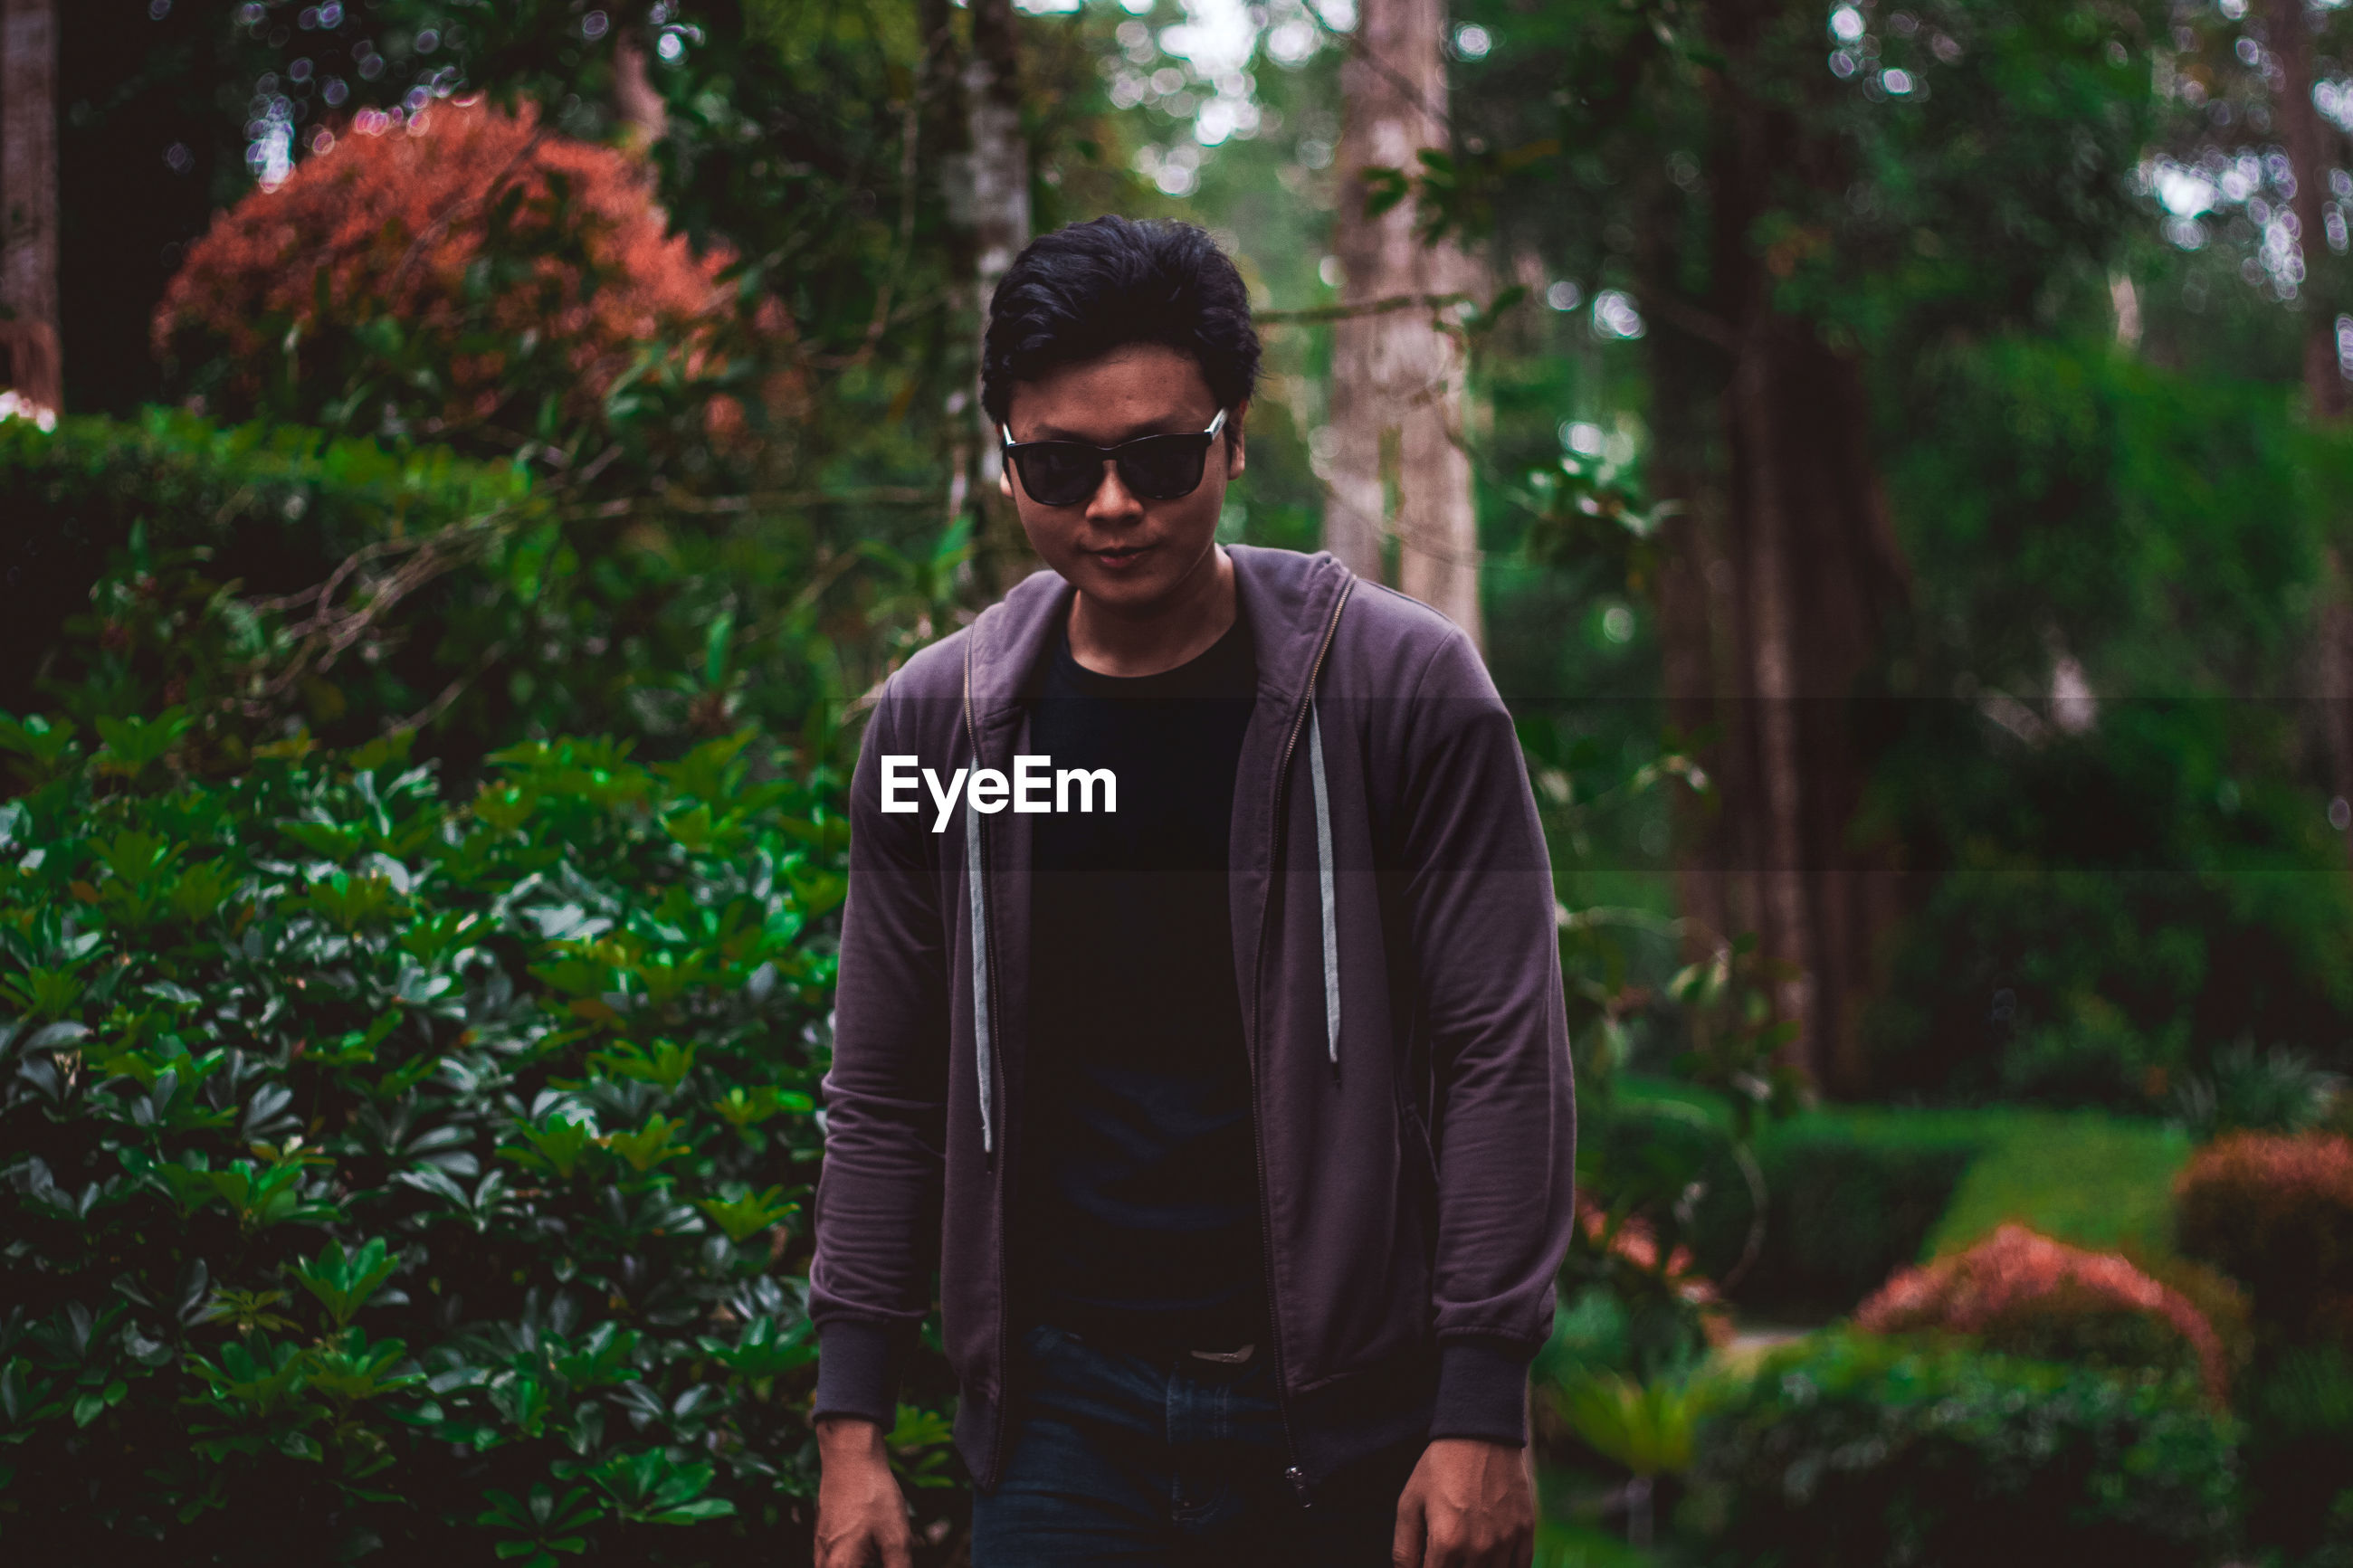 standing, casual clothing, young adult, nature, tree, front view, sunglasses, one person, one young man only, outdoors, only men, one man only, adults only, adult, people, portrait, day